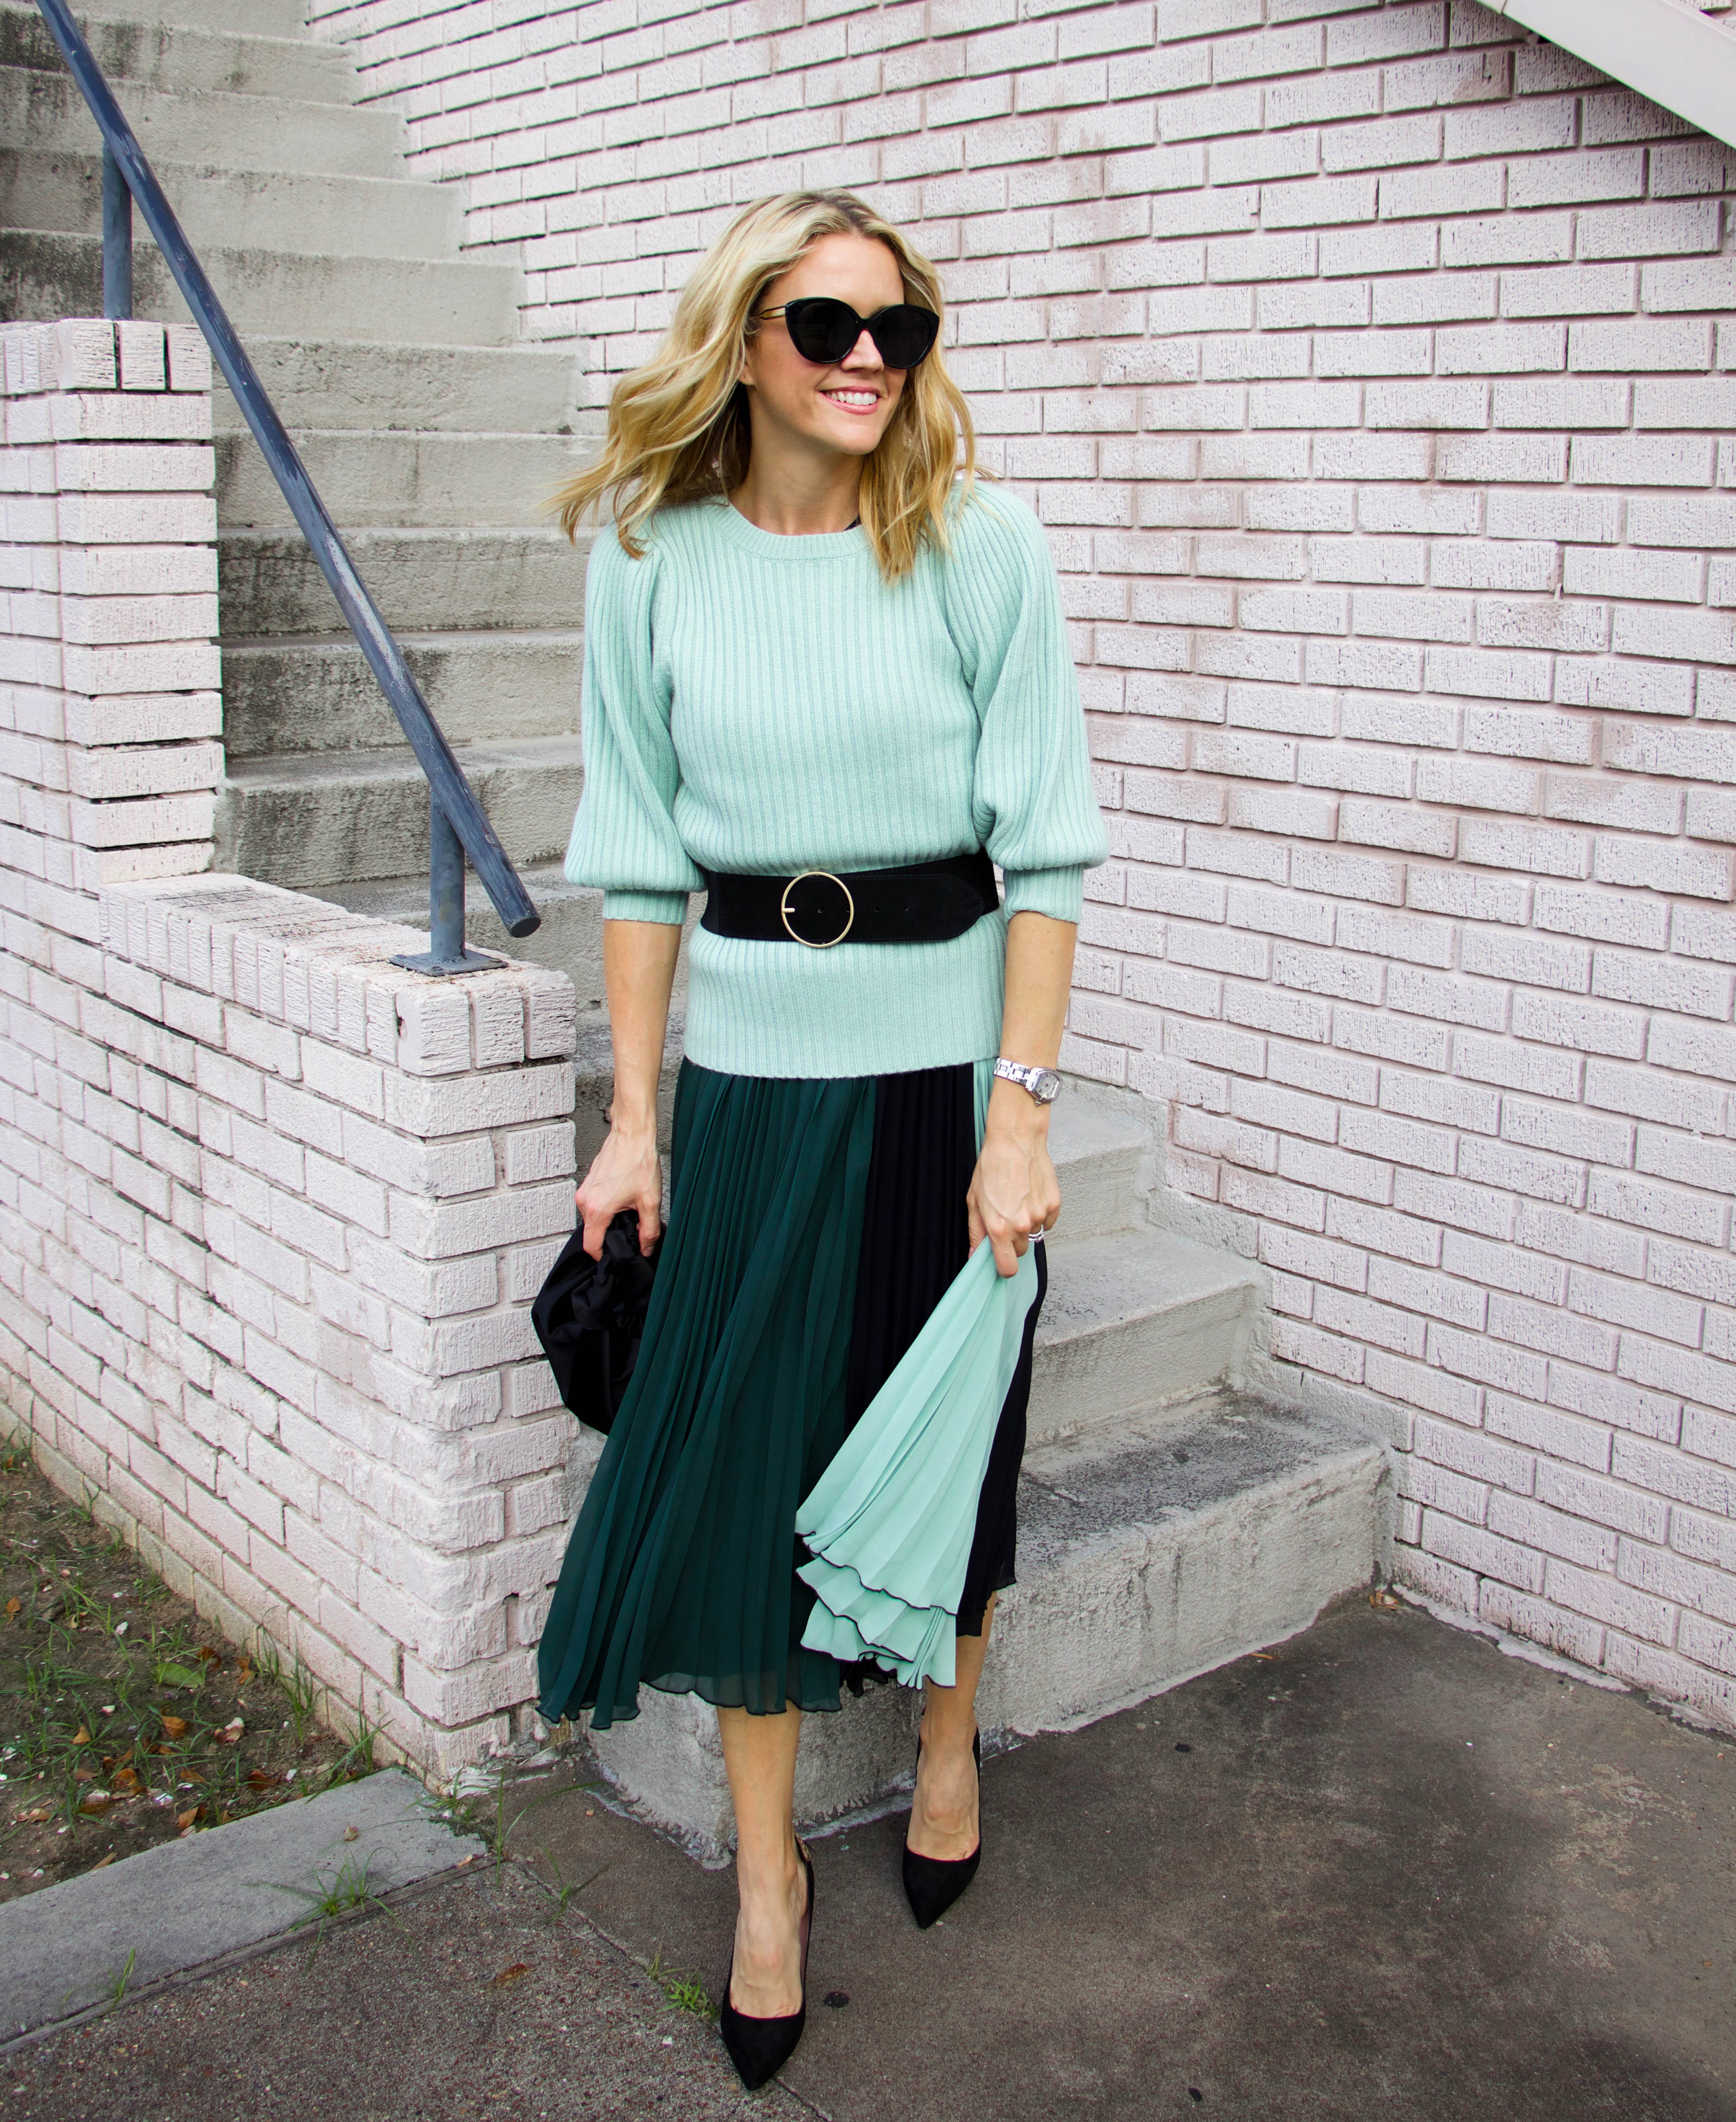 Mint green Atlantic Pacific sweater, dress, black pumps